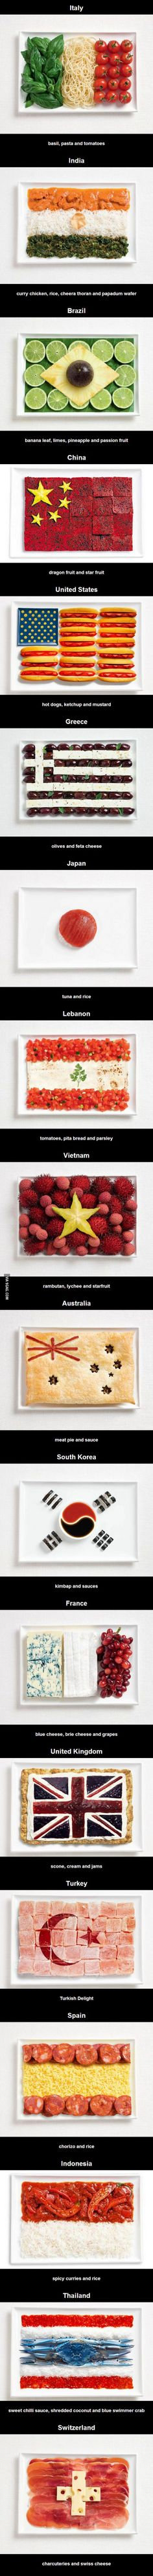 Countries to eat